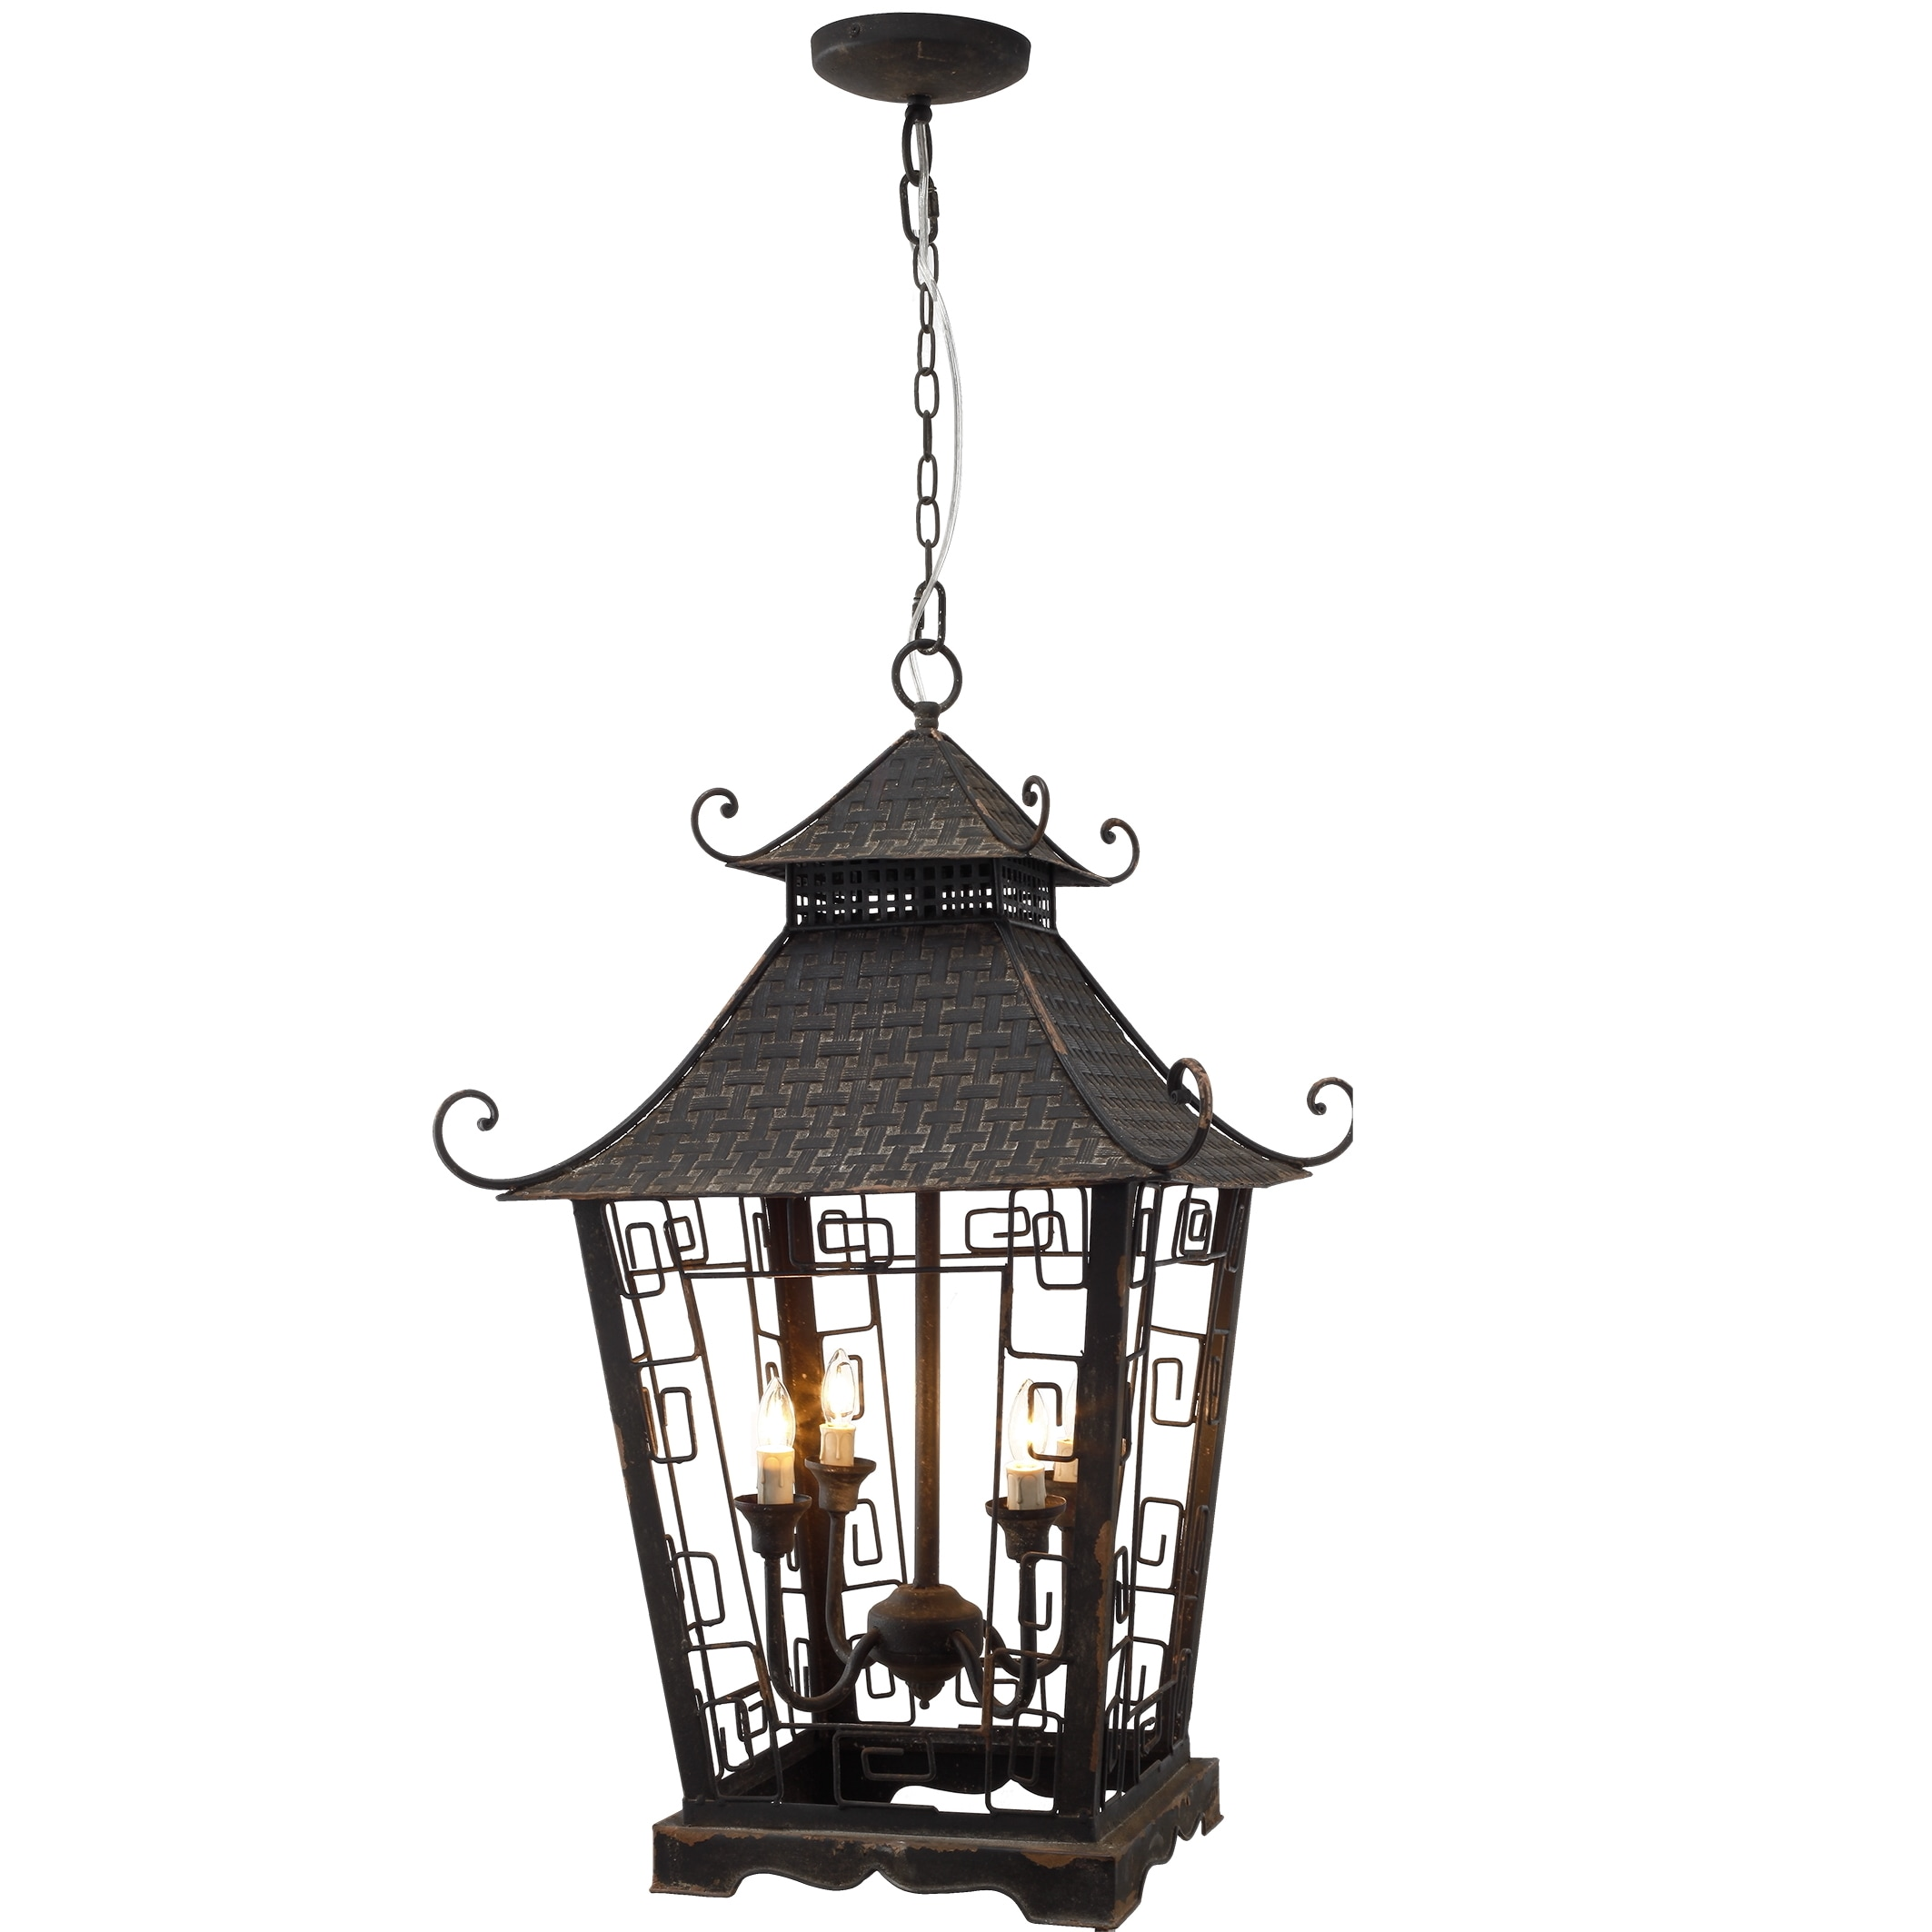 Ming Iron Chandelier with Black Color